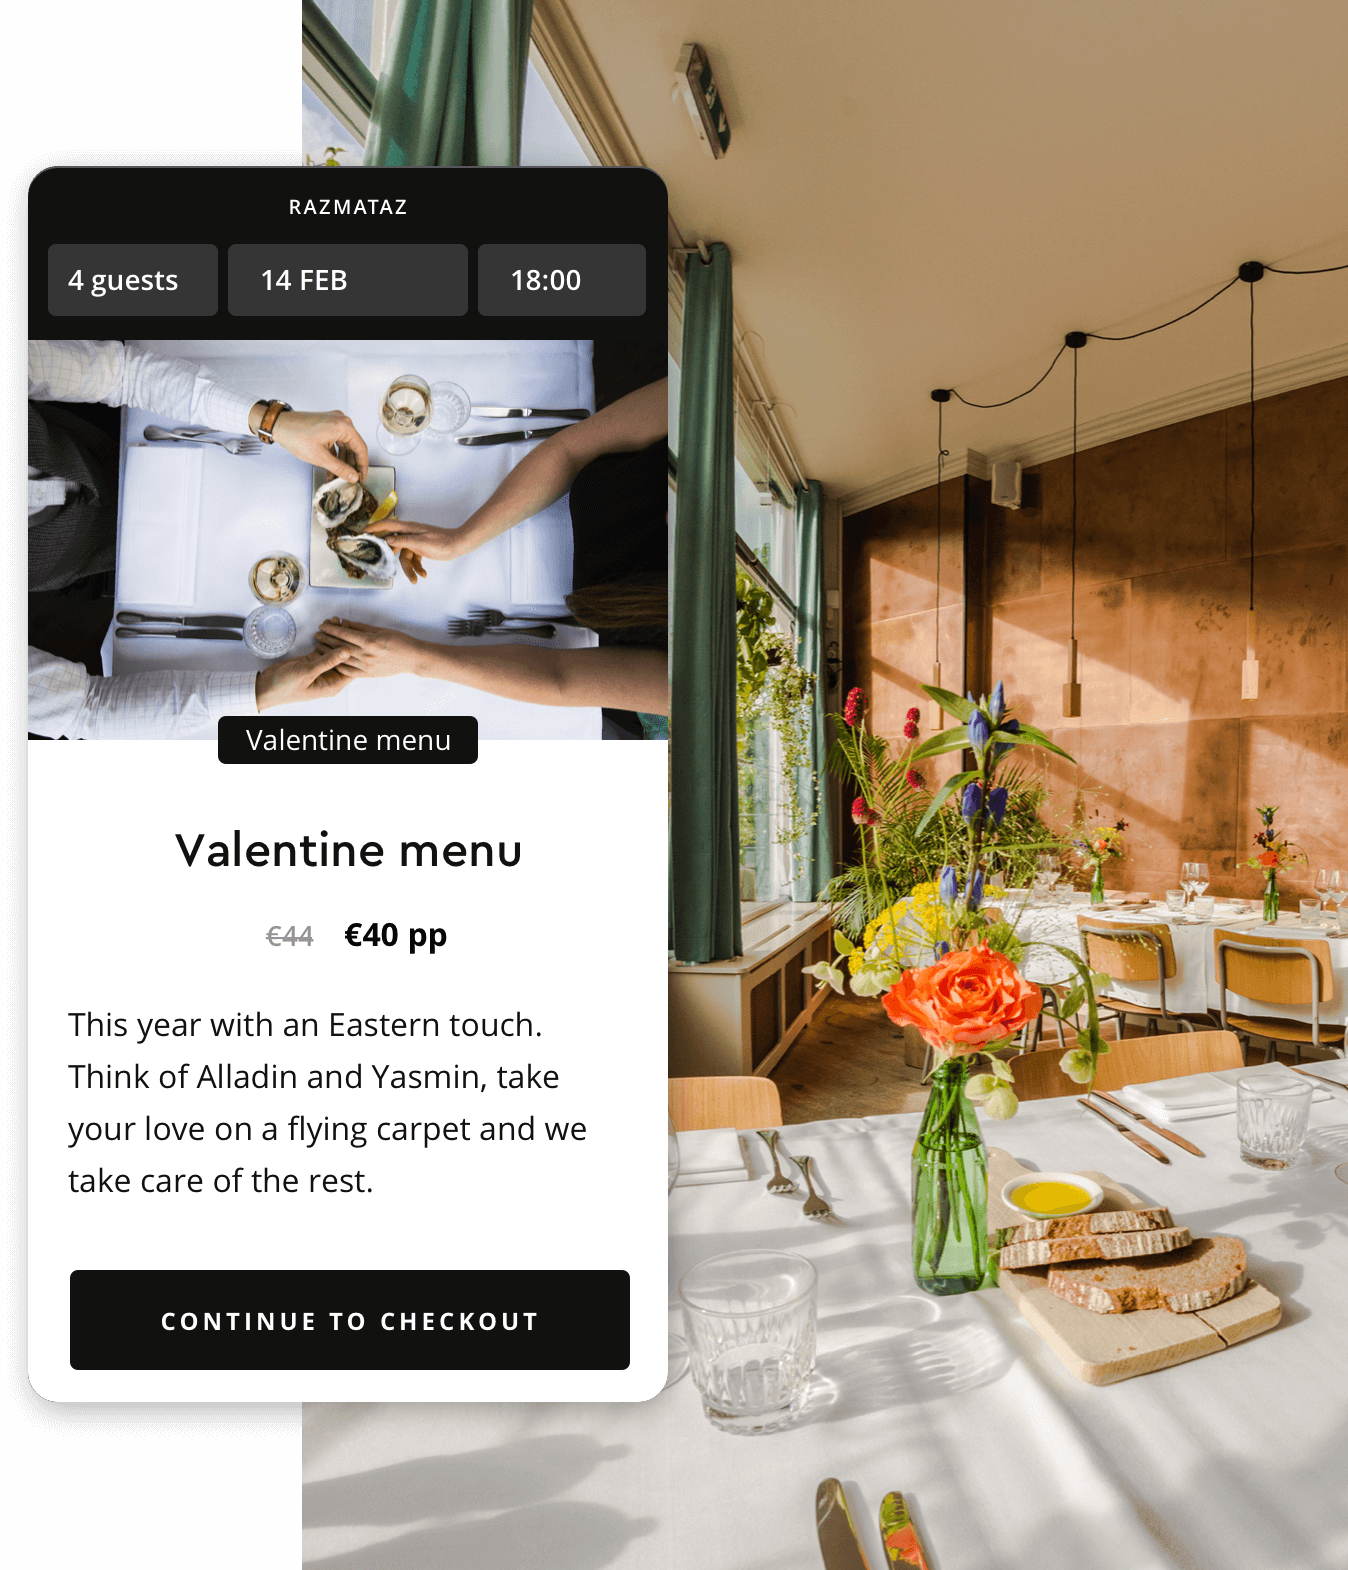 Reservation widget with a valentine ticket for restaurant Razmataz in Amsterdam